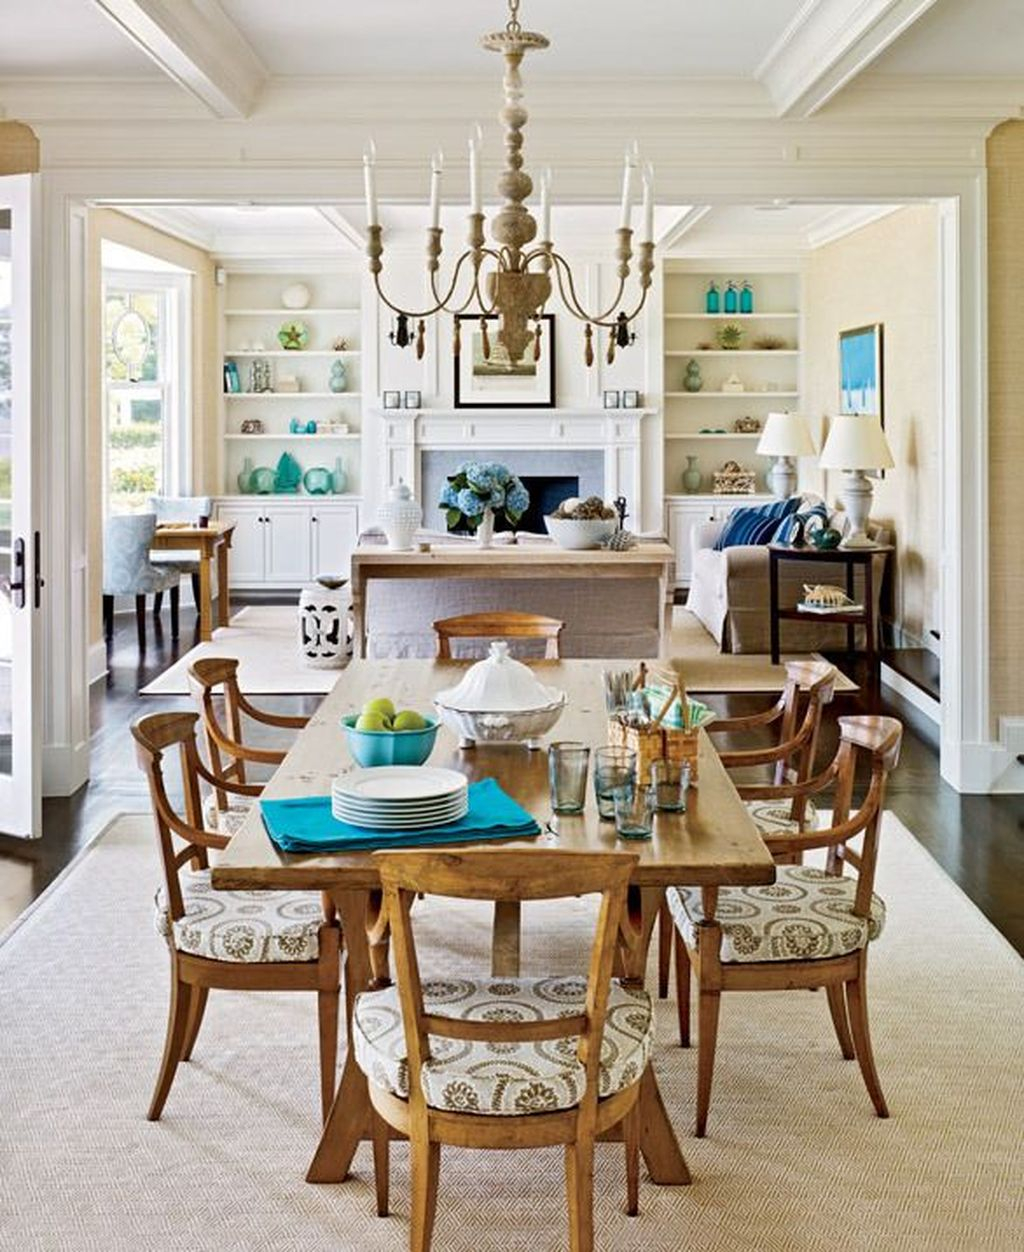 The Concept Of A Table And Chair For Dining Room34